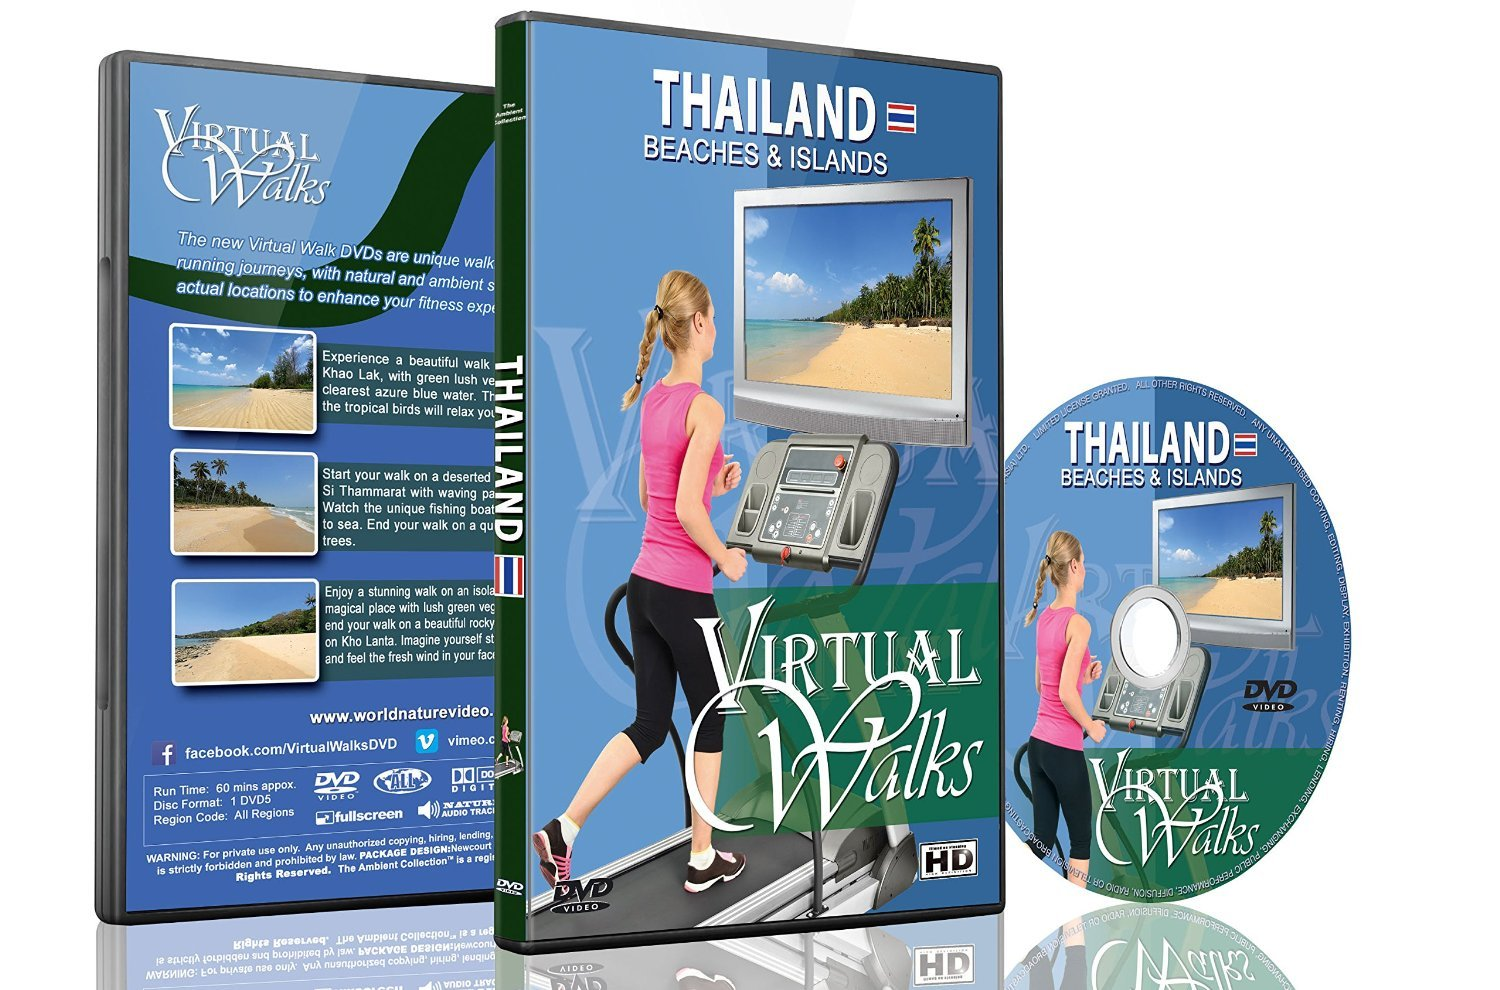 Virtual Walks - Thailand Beaches and Islands for Indoor Walking ...